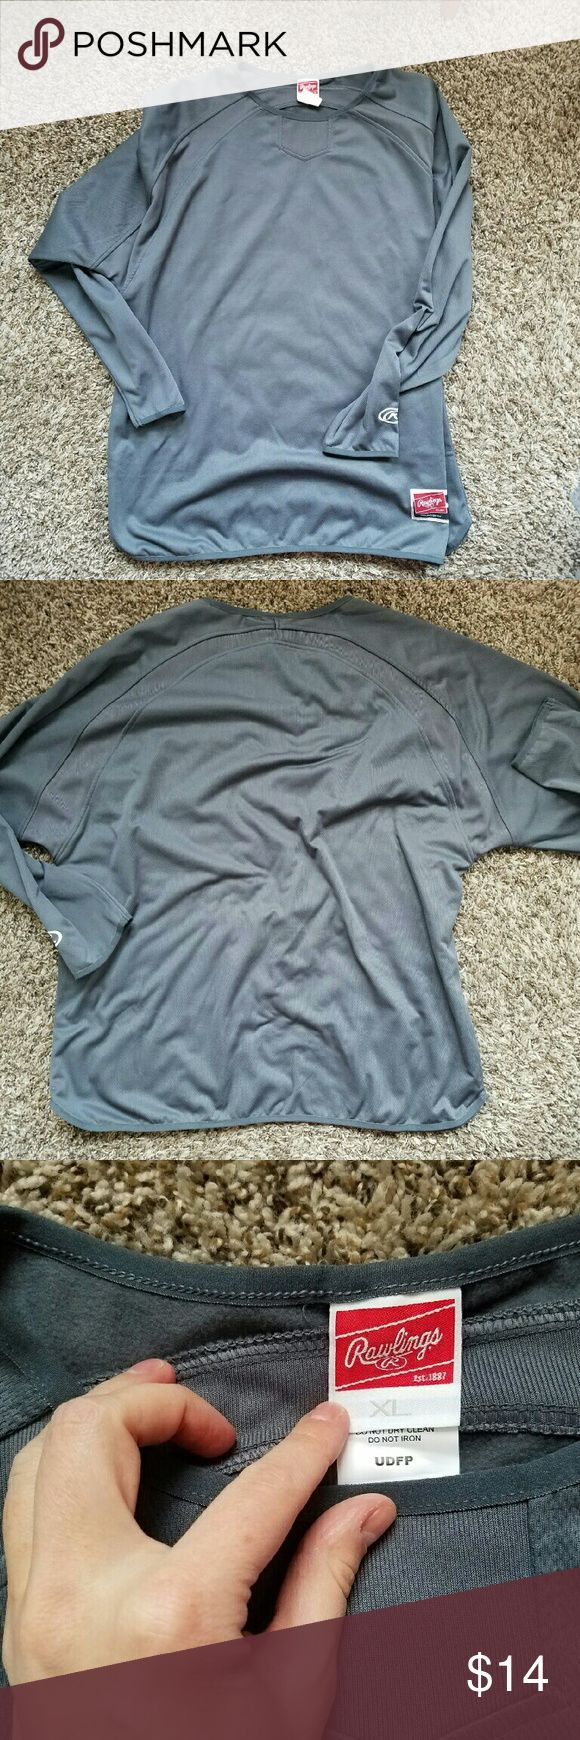 NWOT Rawlings long sleeve Gray athletic shirt by Rawlings. Never been worn! No offers accepted for this item. Bundle 4 items that are listed for $8 each and pay only $20! Rawlings Shirts Tees - Long Sleeve